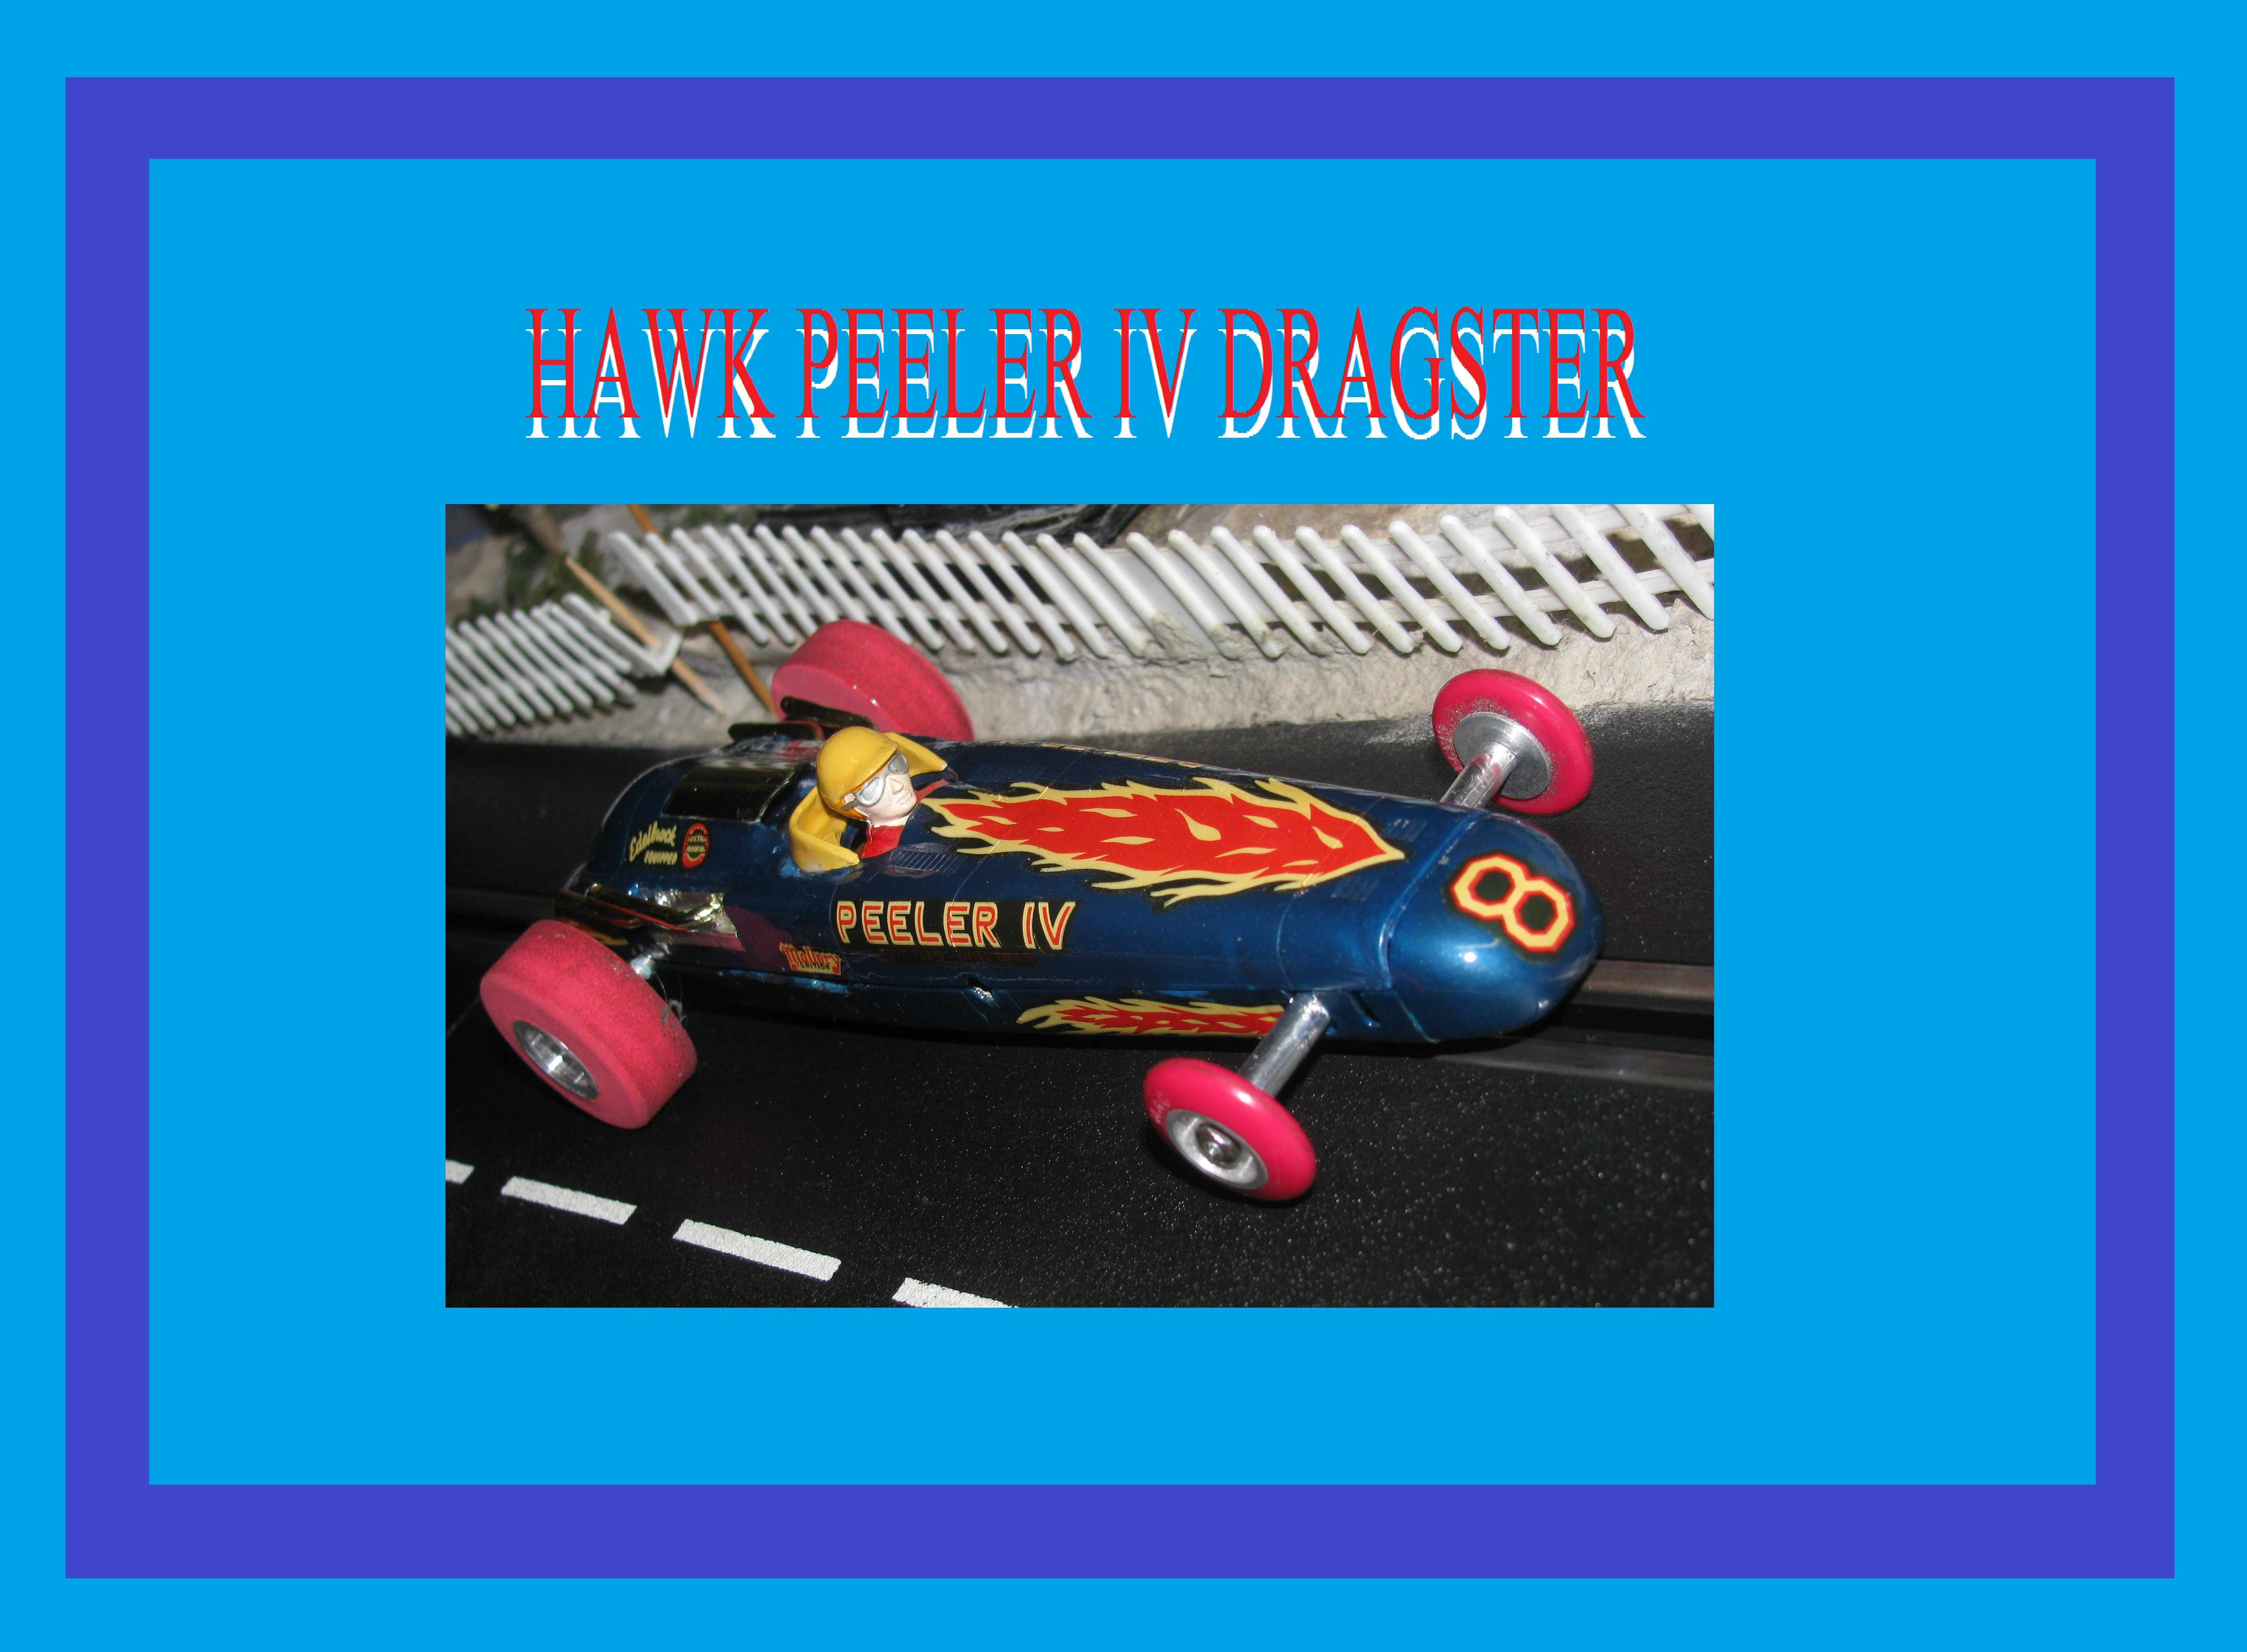 * SOLD * * SUMMER SALE * HAWK PEELER IV Customized Dragster 1:24 Scale Slot Car #8